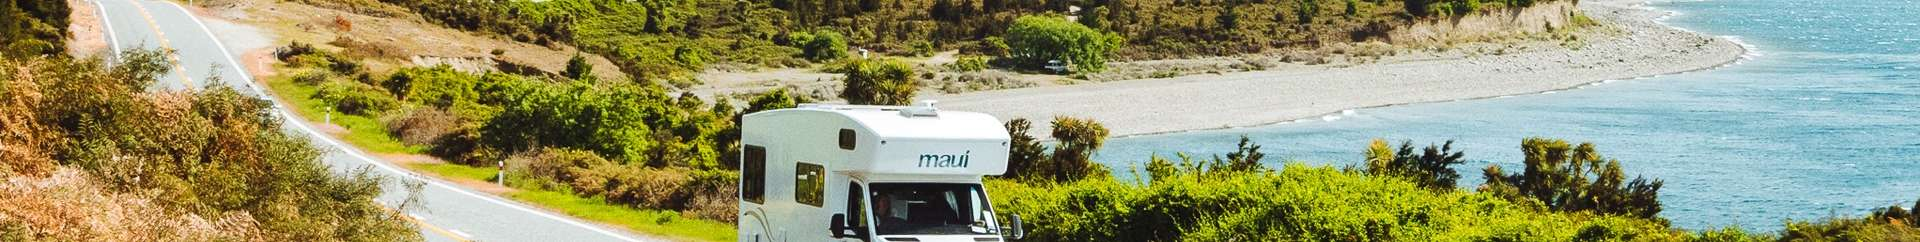 maui-flexible-bookings